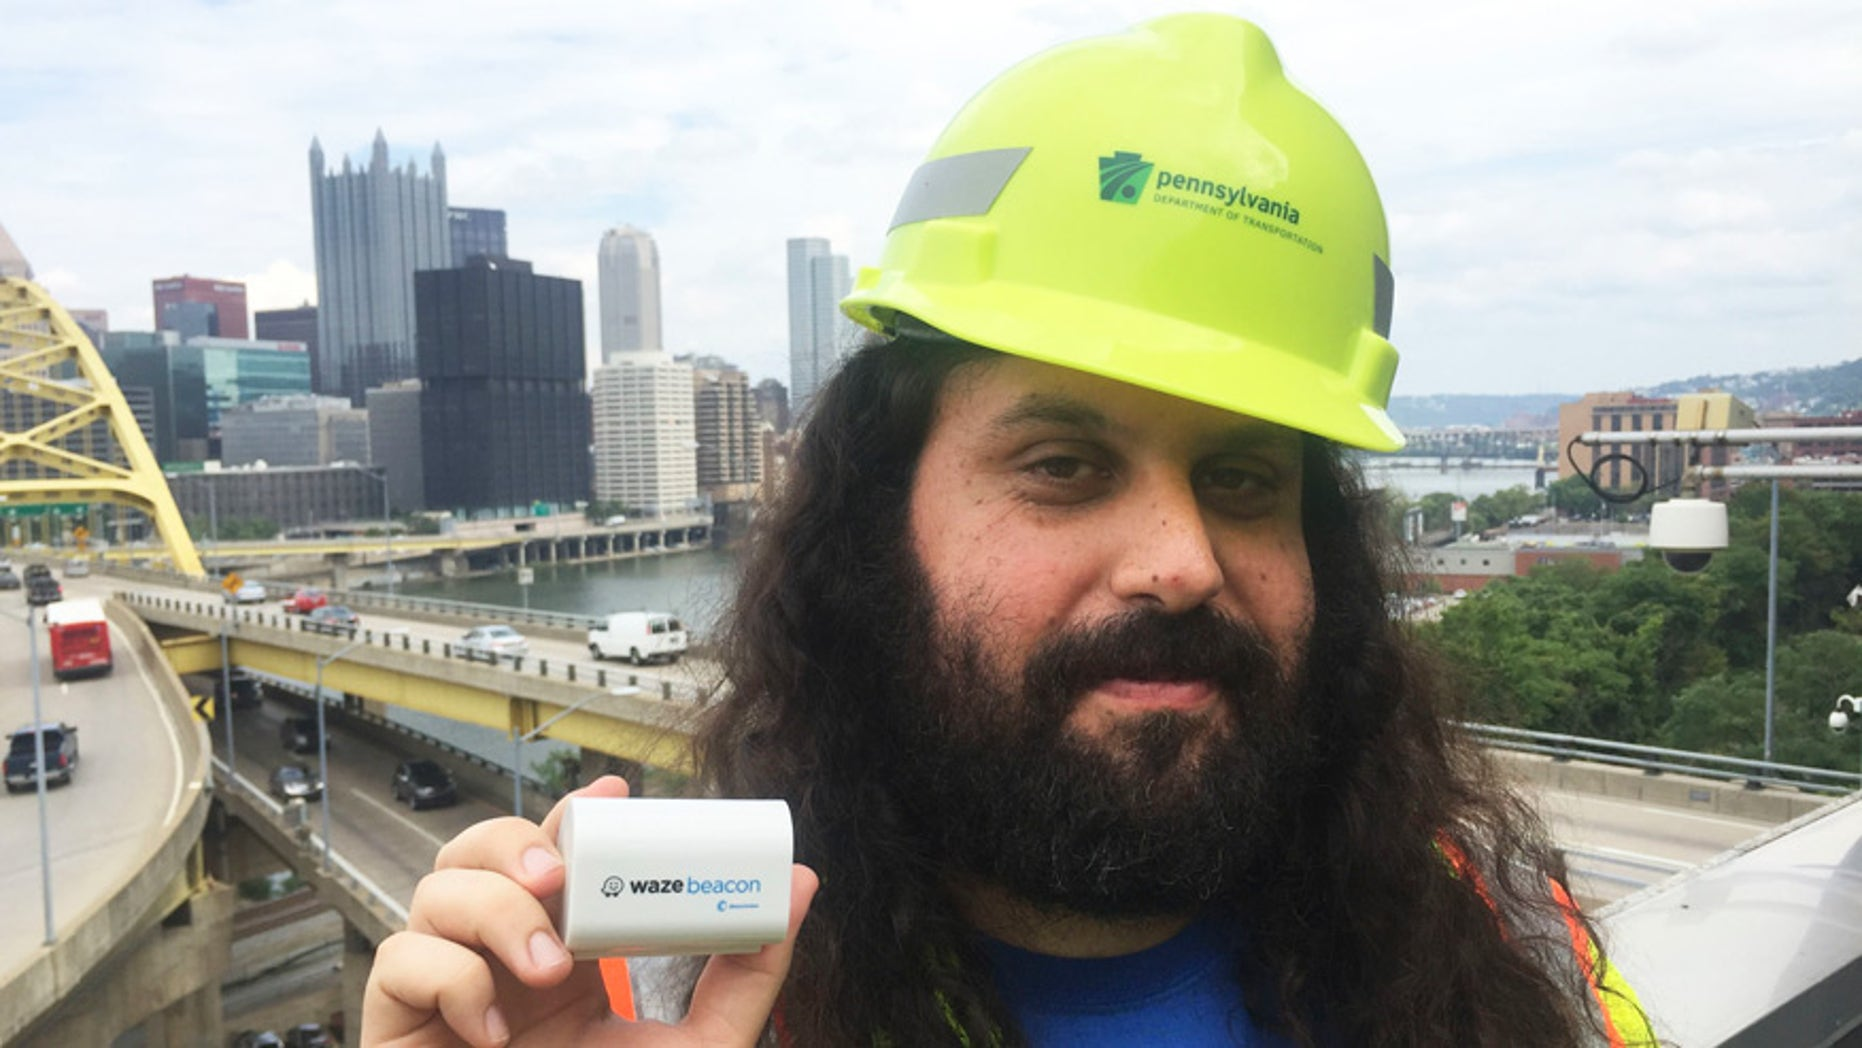 Waze system operation engineer Gil Disatnik holds a Waze beacon in Pittsburgh.